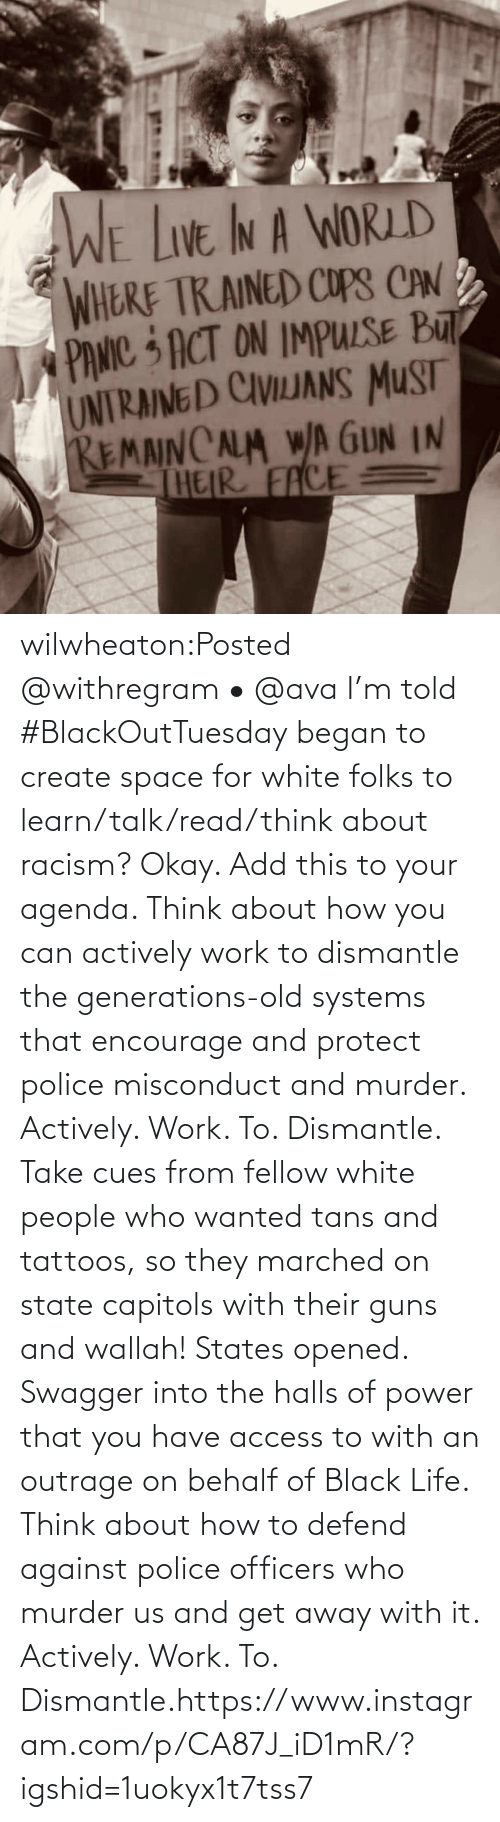 www: wilwheaton:Posted @withregram • @ava I'm told #BlackOutTuesday began to create space for white folks to learn/talk/read/think about racism? Okay. Add this to your agenda. Think about how you can actively work to dismantle the generations-old systems that encourage and protect police misconduct and murder. Actively. Work. To. Dismantle. Take cues from fellow white people who wanted tans and tattoos, so they marched on state capitols with their guns and wallah! States opened. Swagger into the halls of power that you have access to with an outrage on behalf of Black Life. Think about how to defend against police officers who murder us and get away with it. Actively. Work. To. Dismantle.https://www.instagram.com/p/CA87J_iD1mR/?igshid=1uokyx1t7tss7